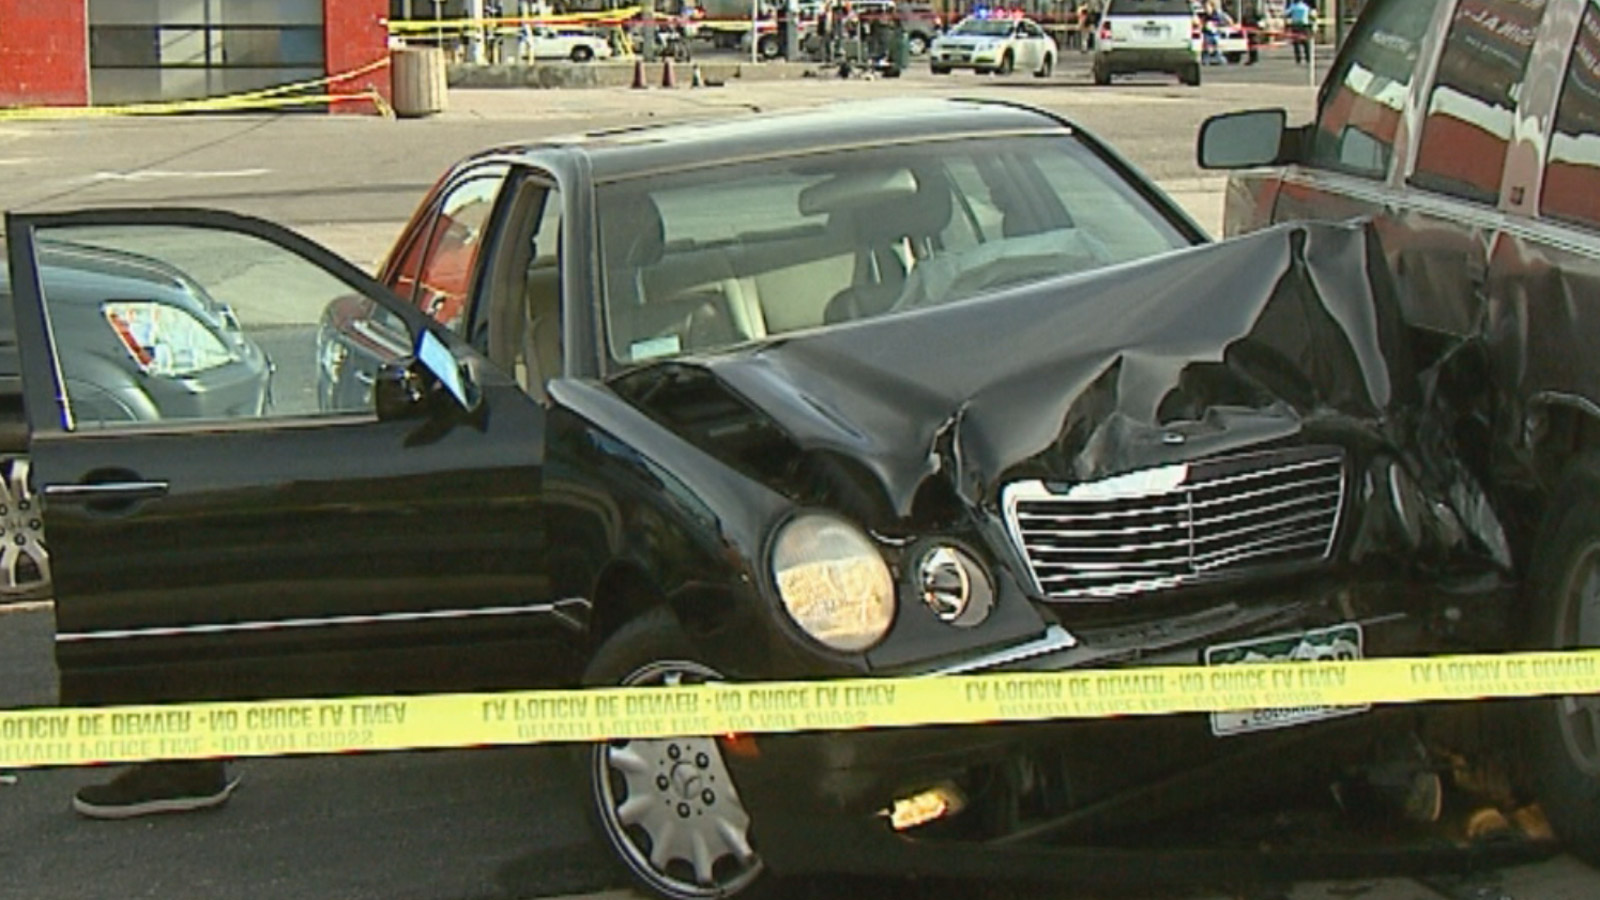 The black Mercedes driven by Christopher Booker that struck four Denver Police officers (credit: CBS)